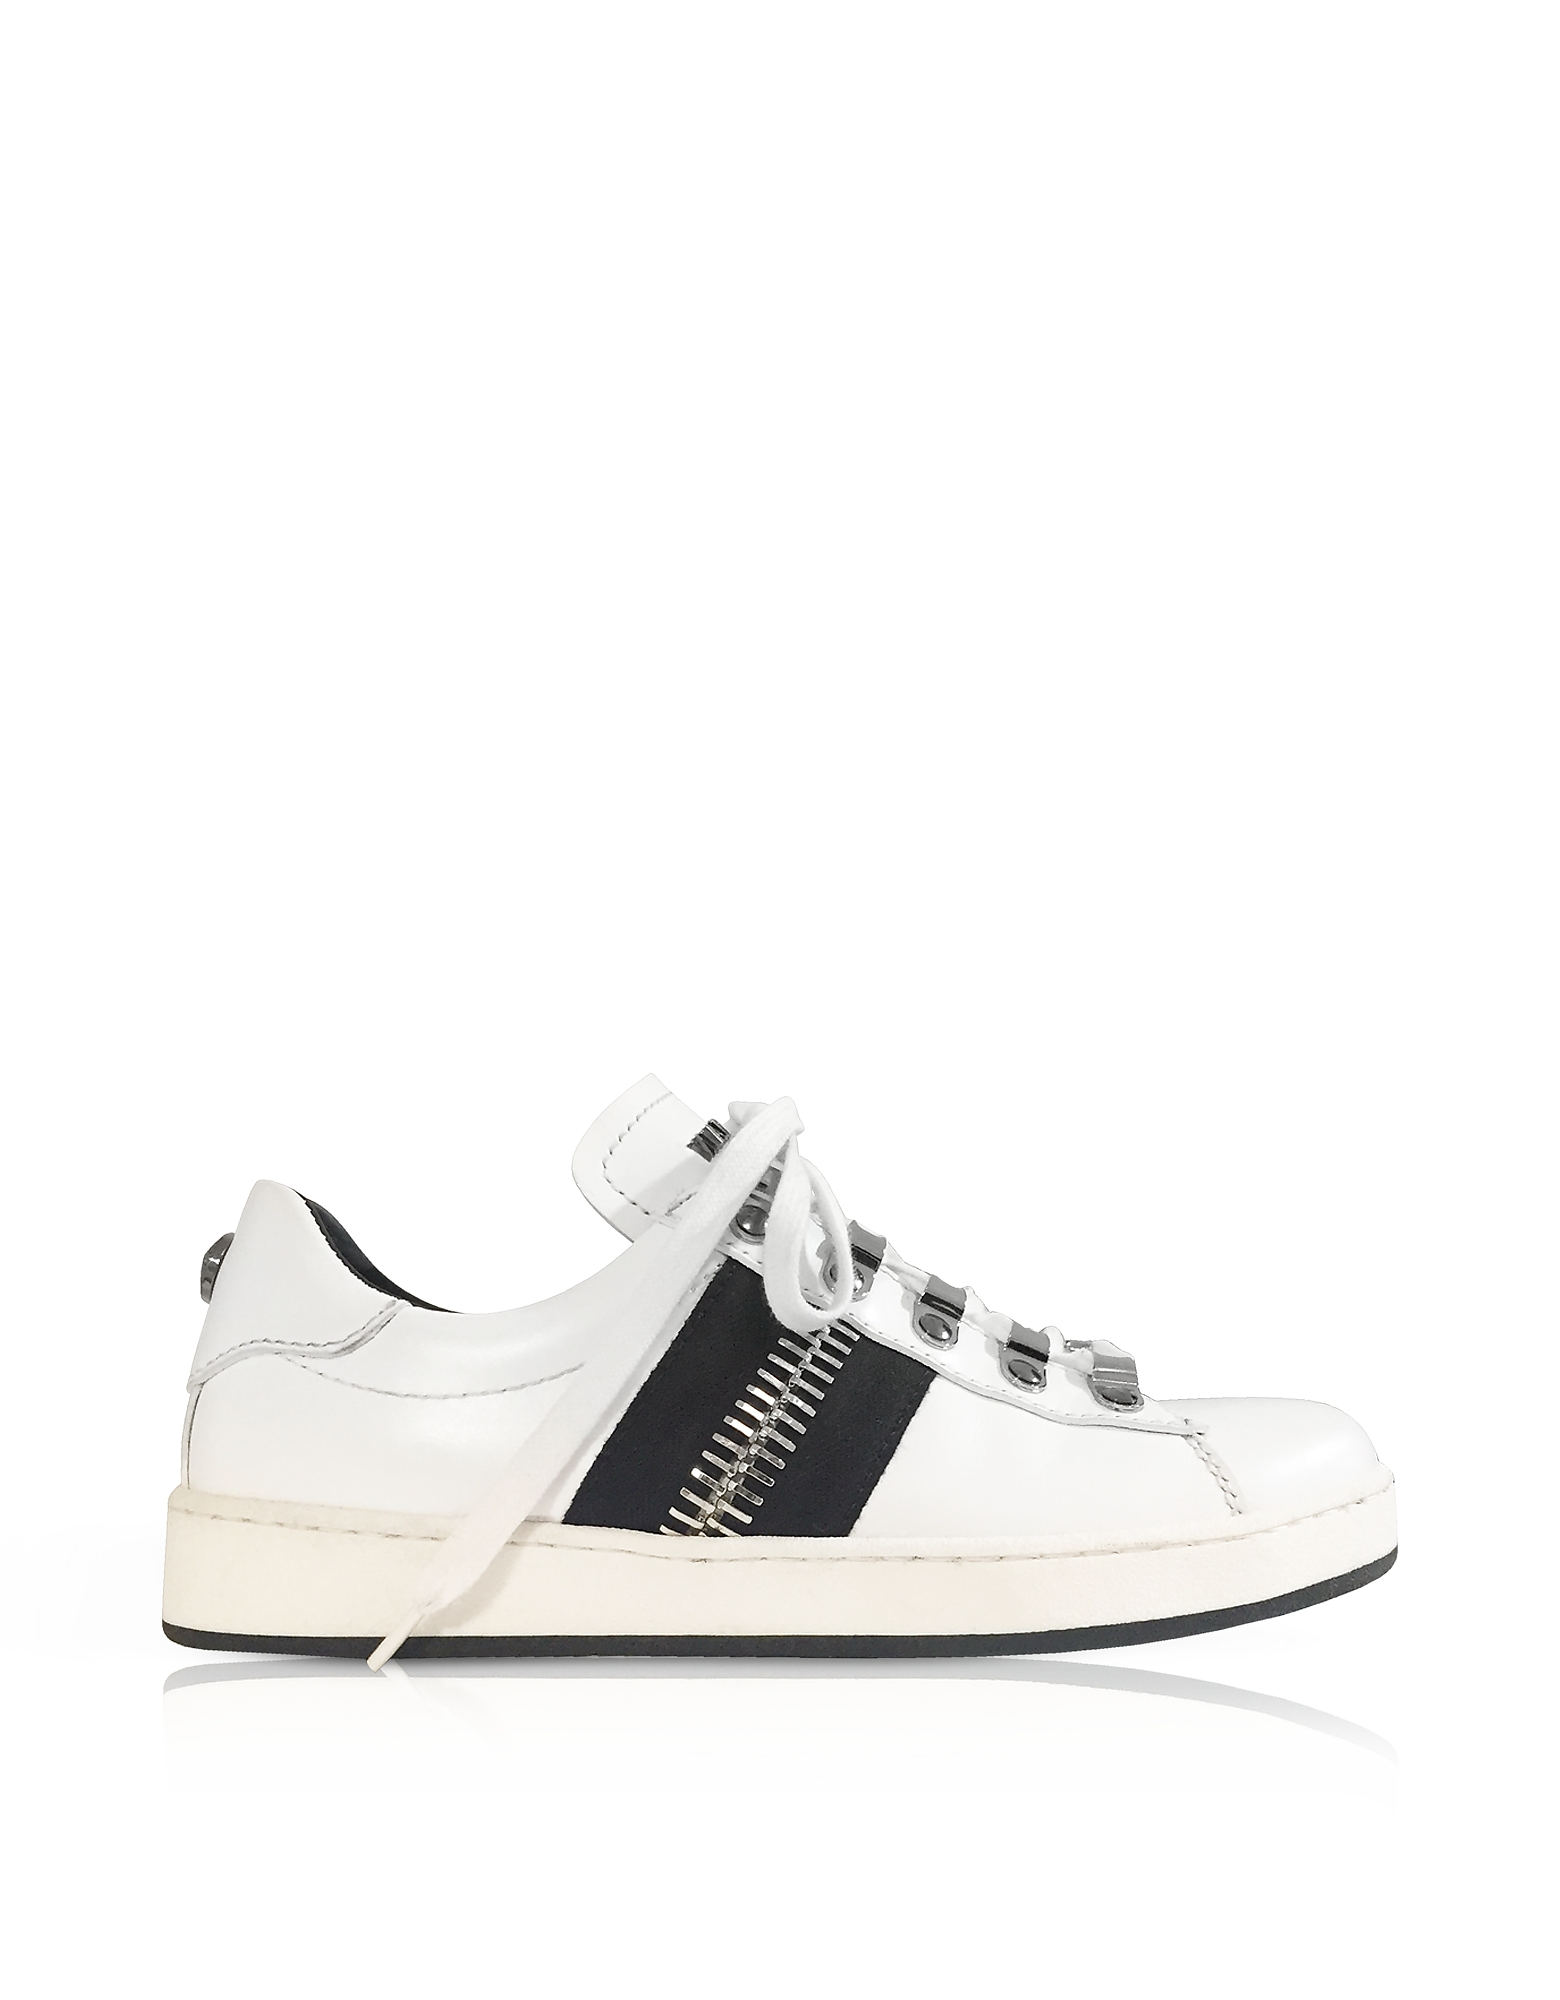 Balmain Shoes, Esther White Leather Low-Top Sneakers